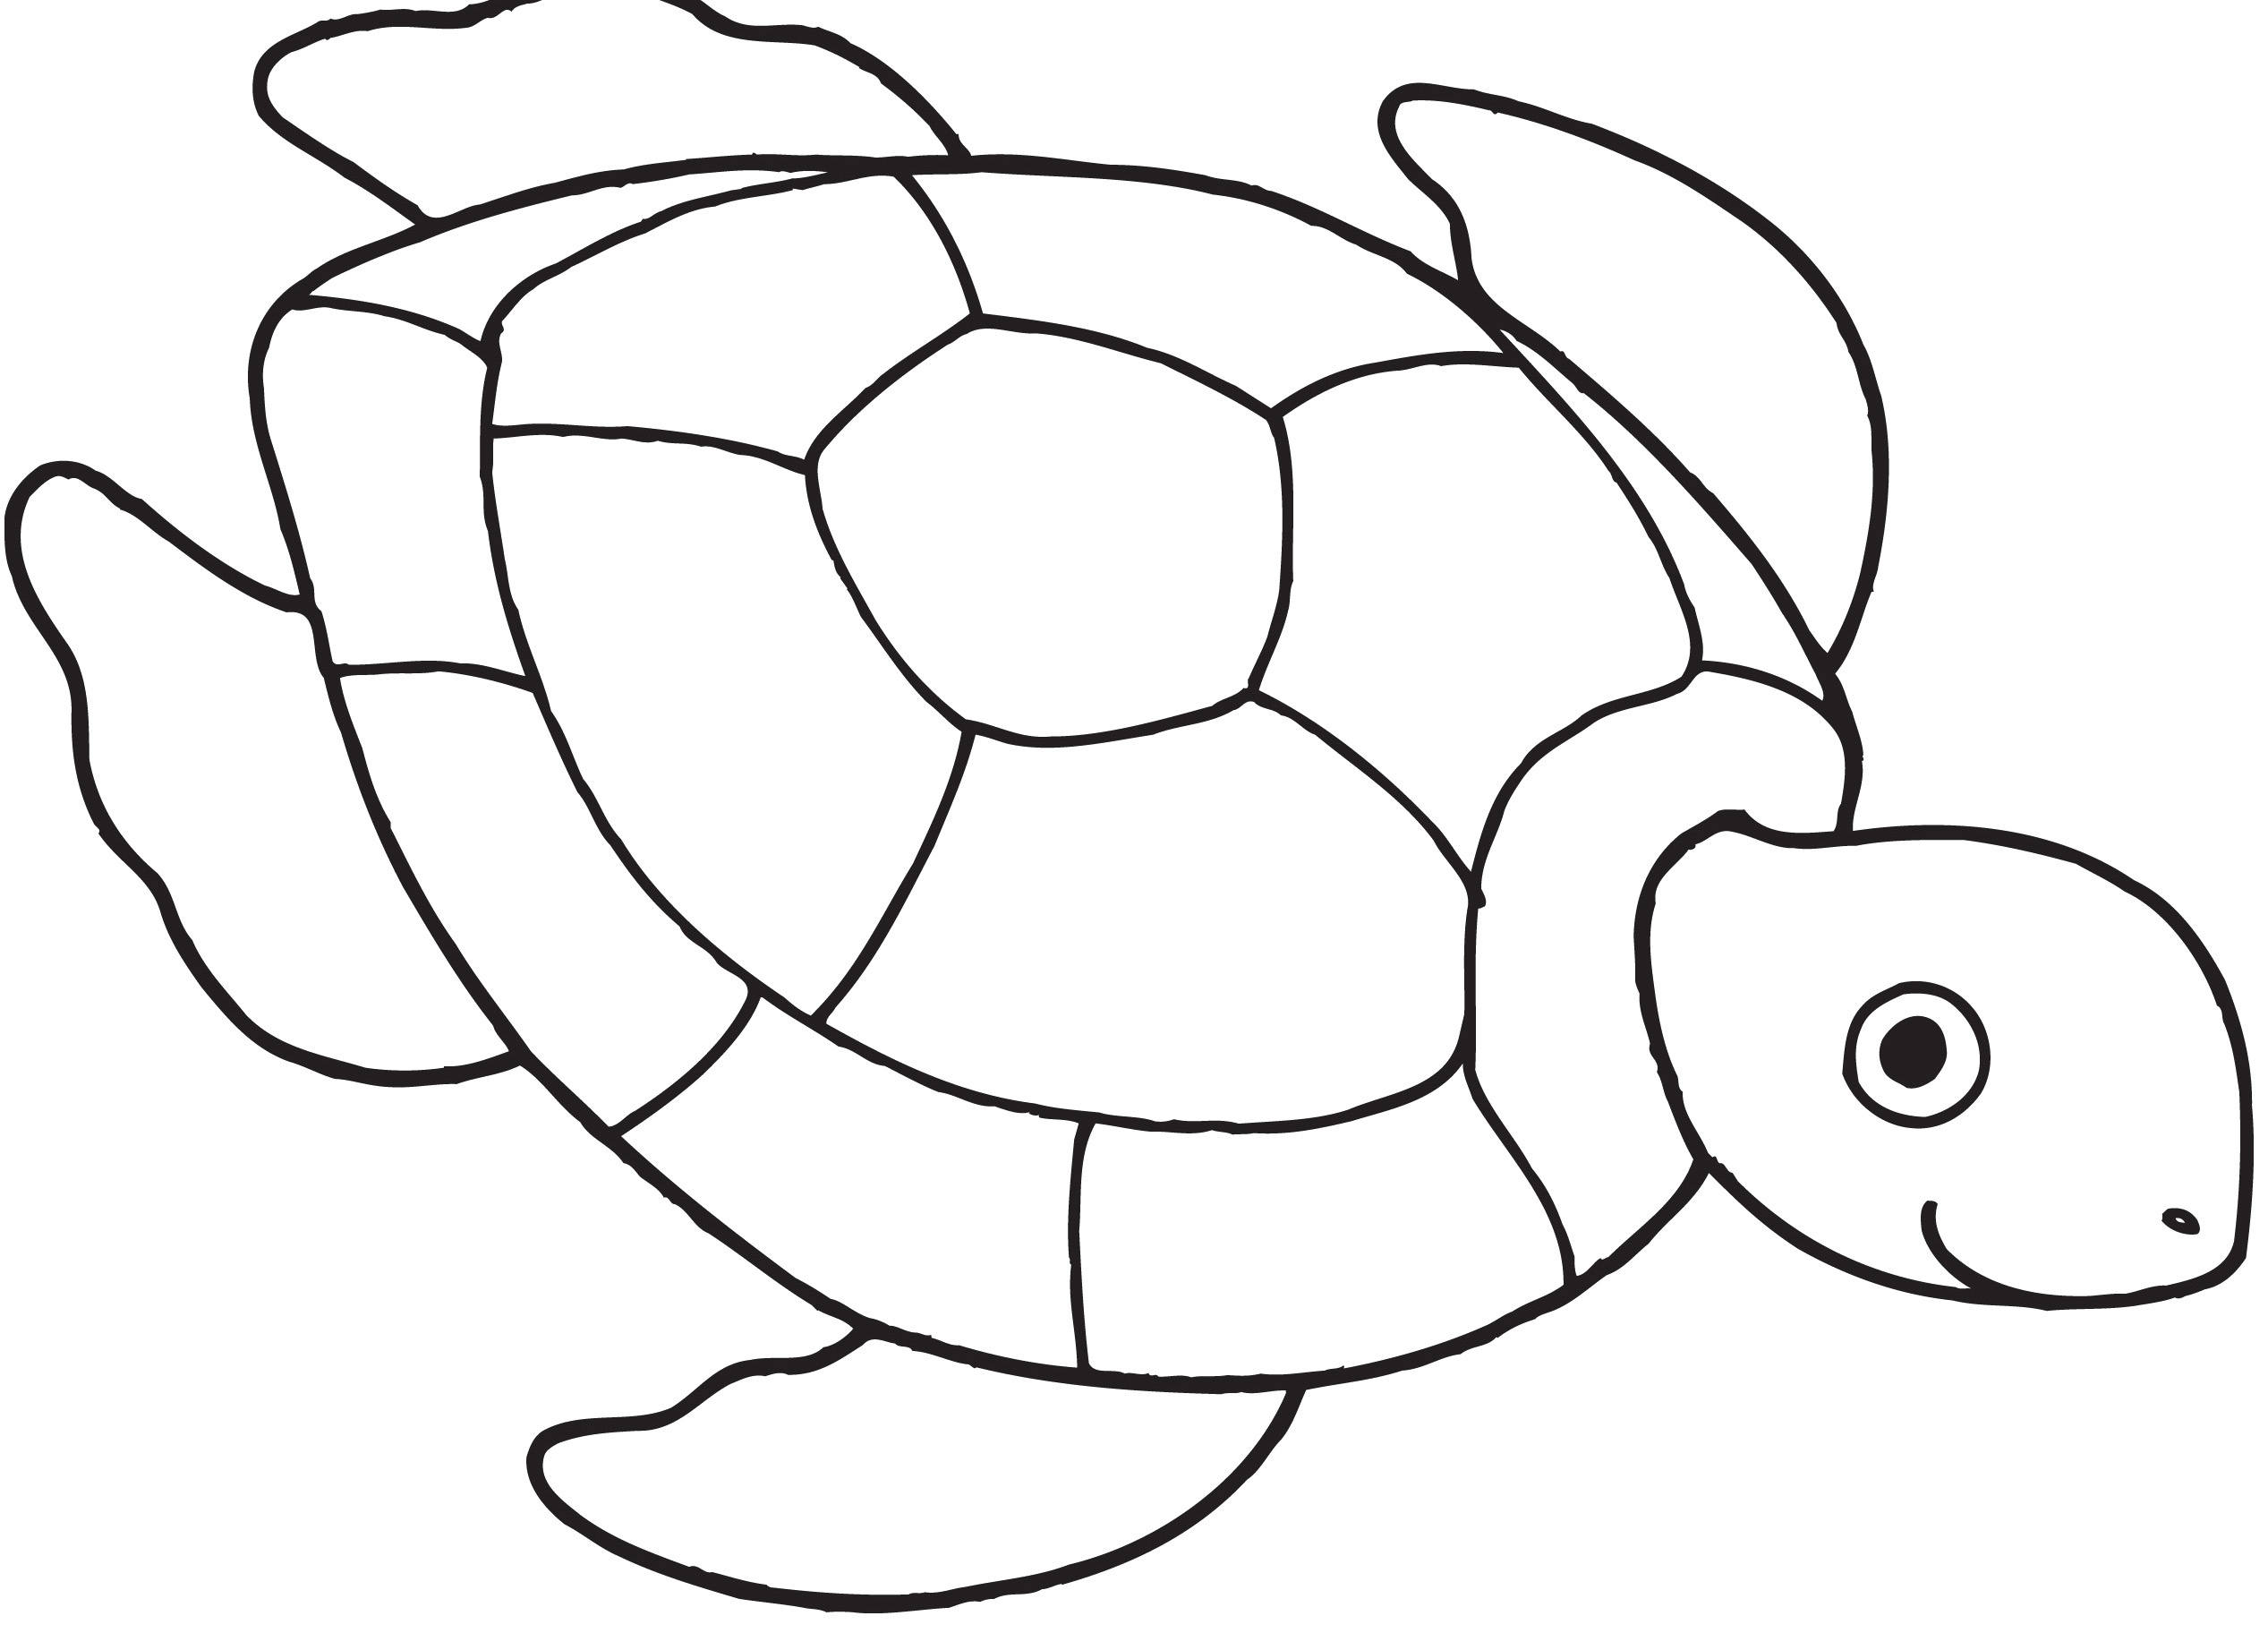 free printable butterfly coloring pages - turtle coloring pages